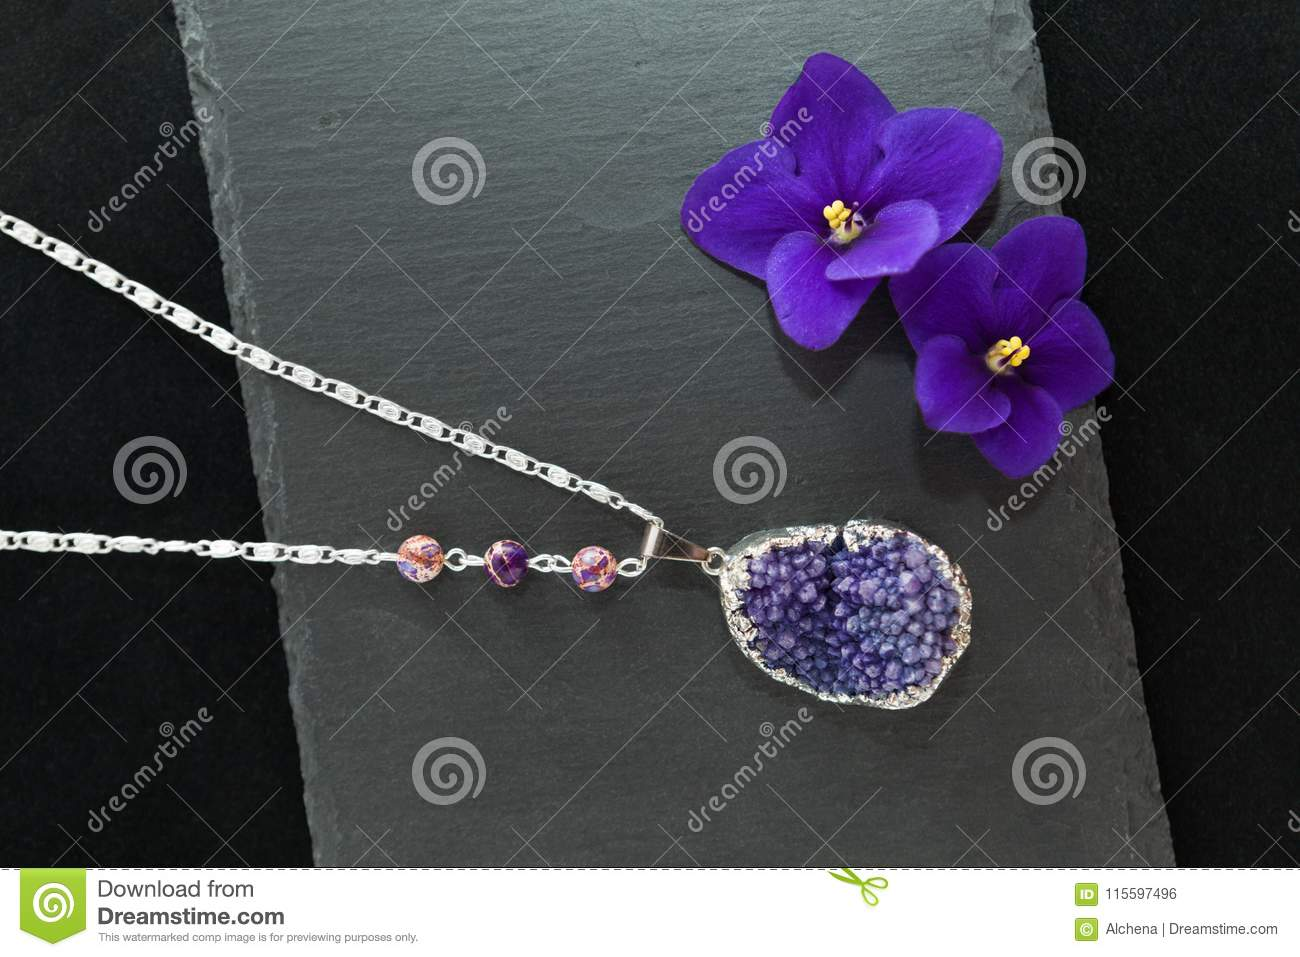 Handmade necklace with druzy violet agate